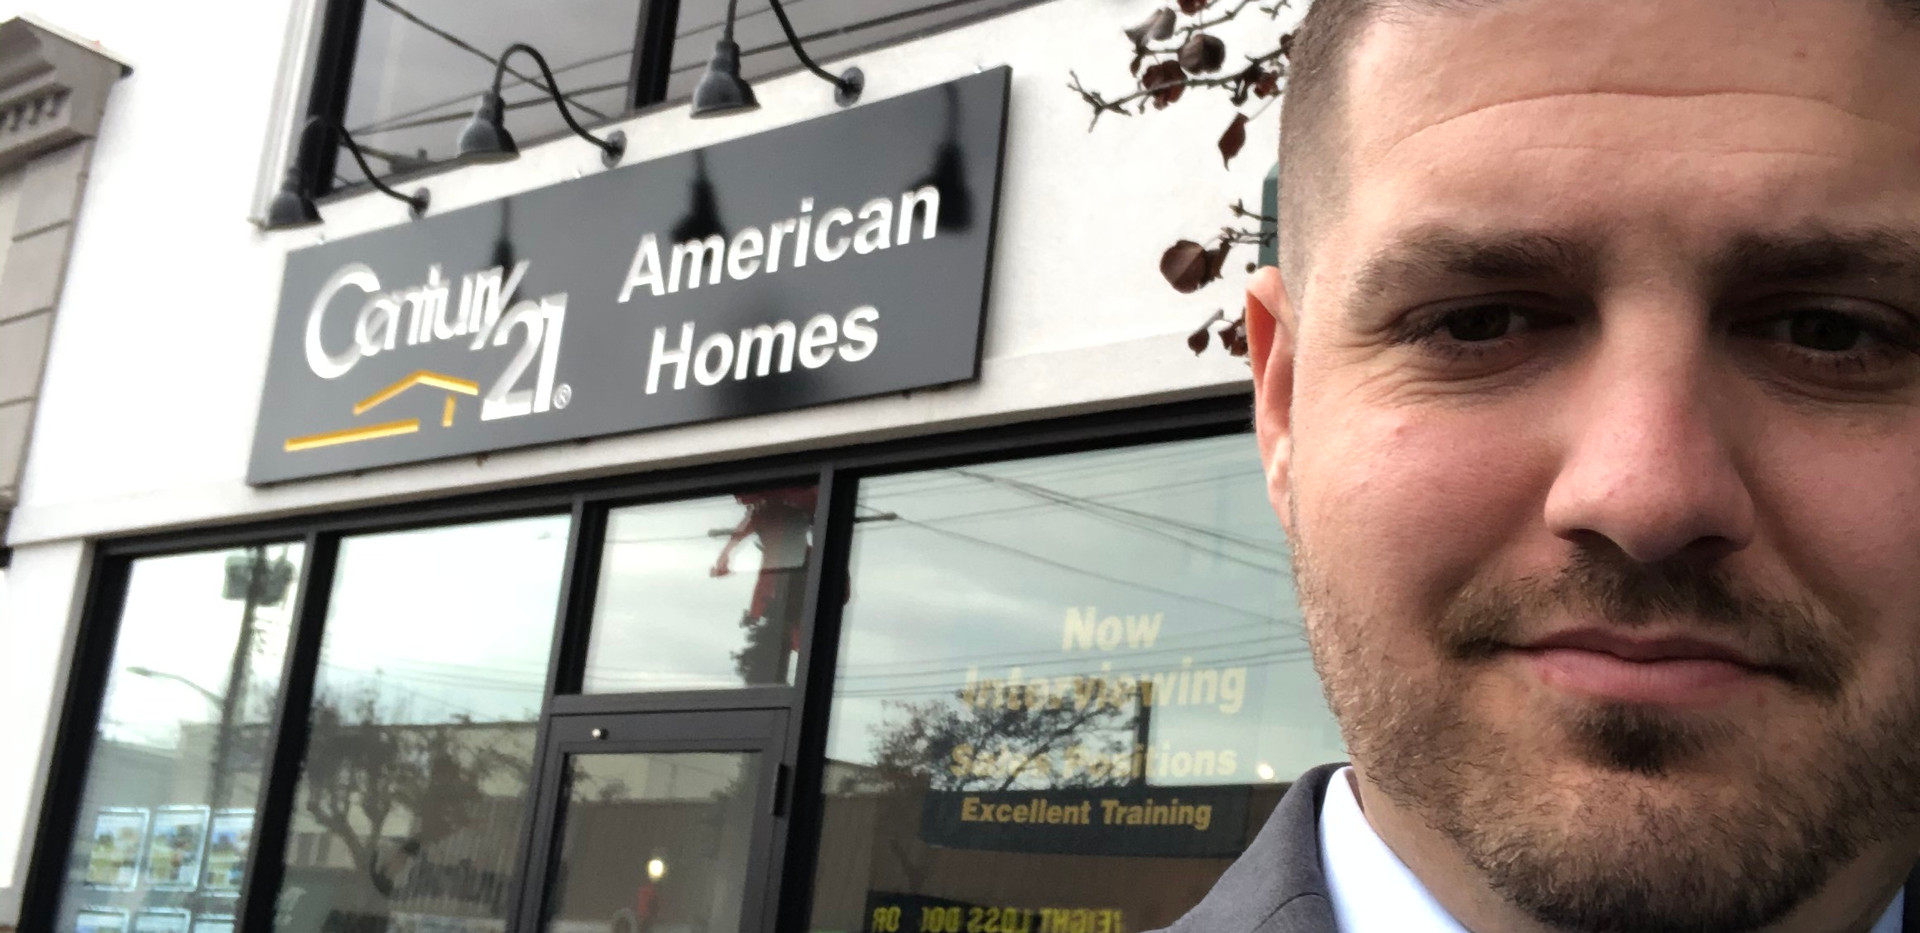 Century 21 American Homes Merrick- The Krug Team